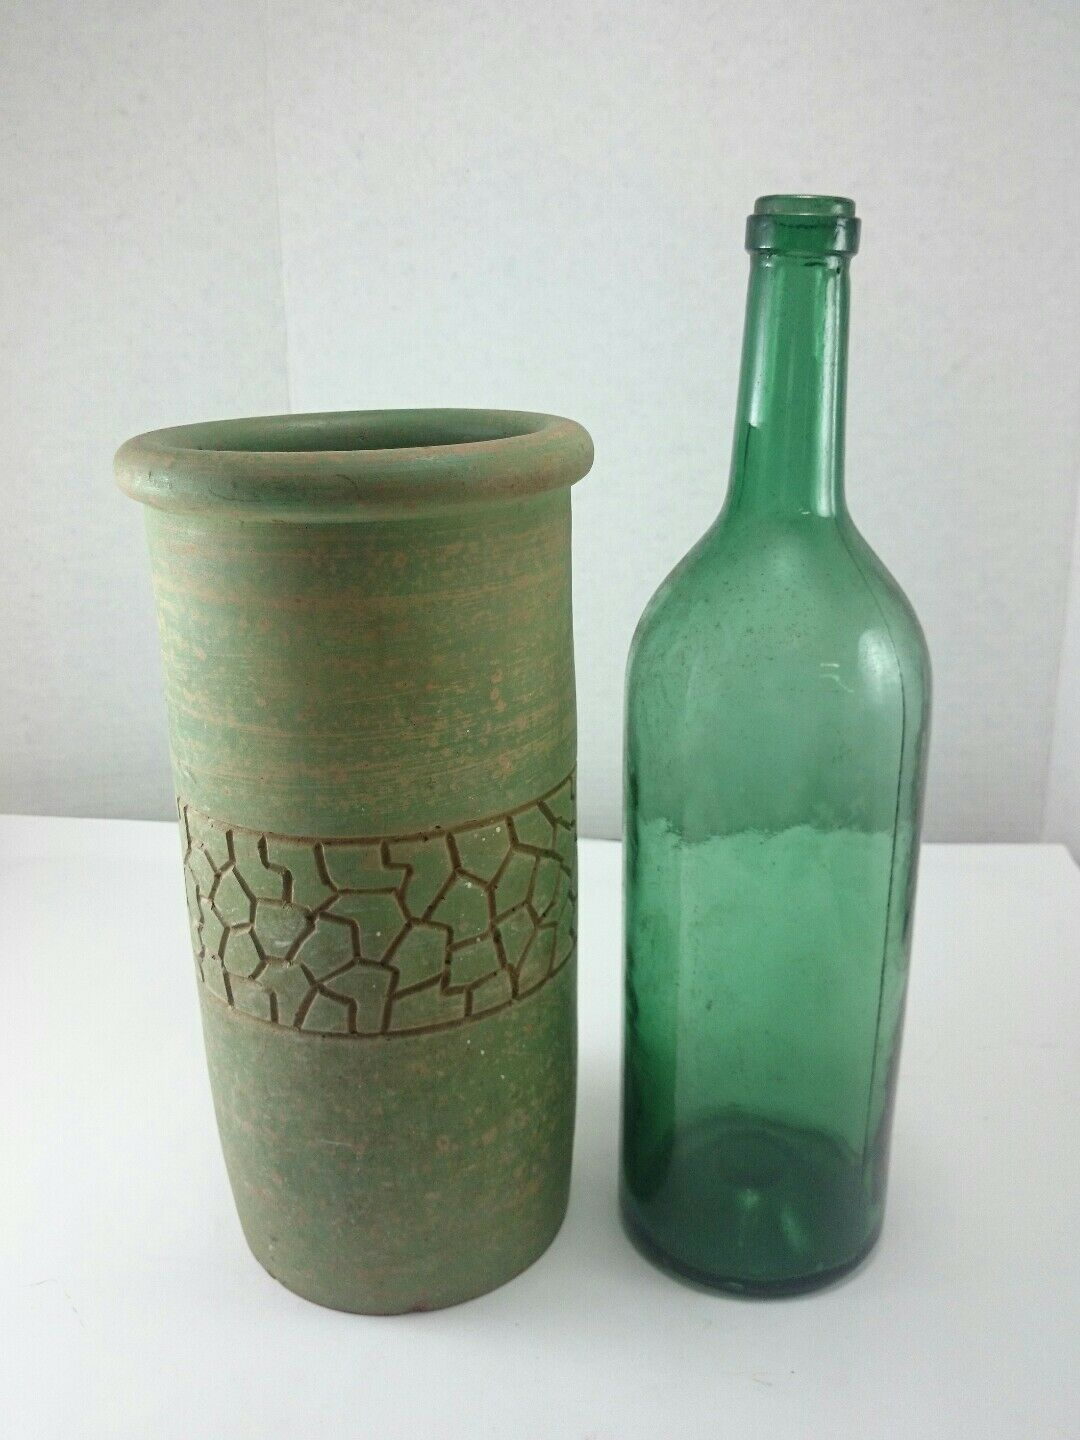 ANTIQUE WINE COOLER 1920 vert Patina Etched Clay Vase Glass Bottle Hand Made